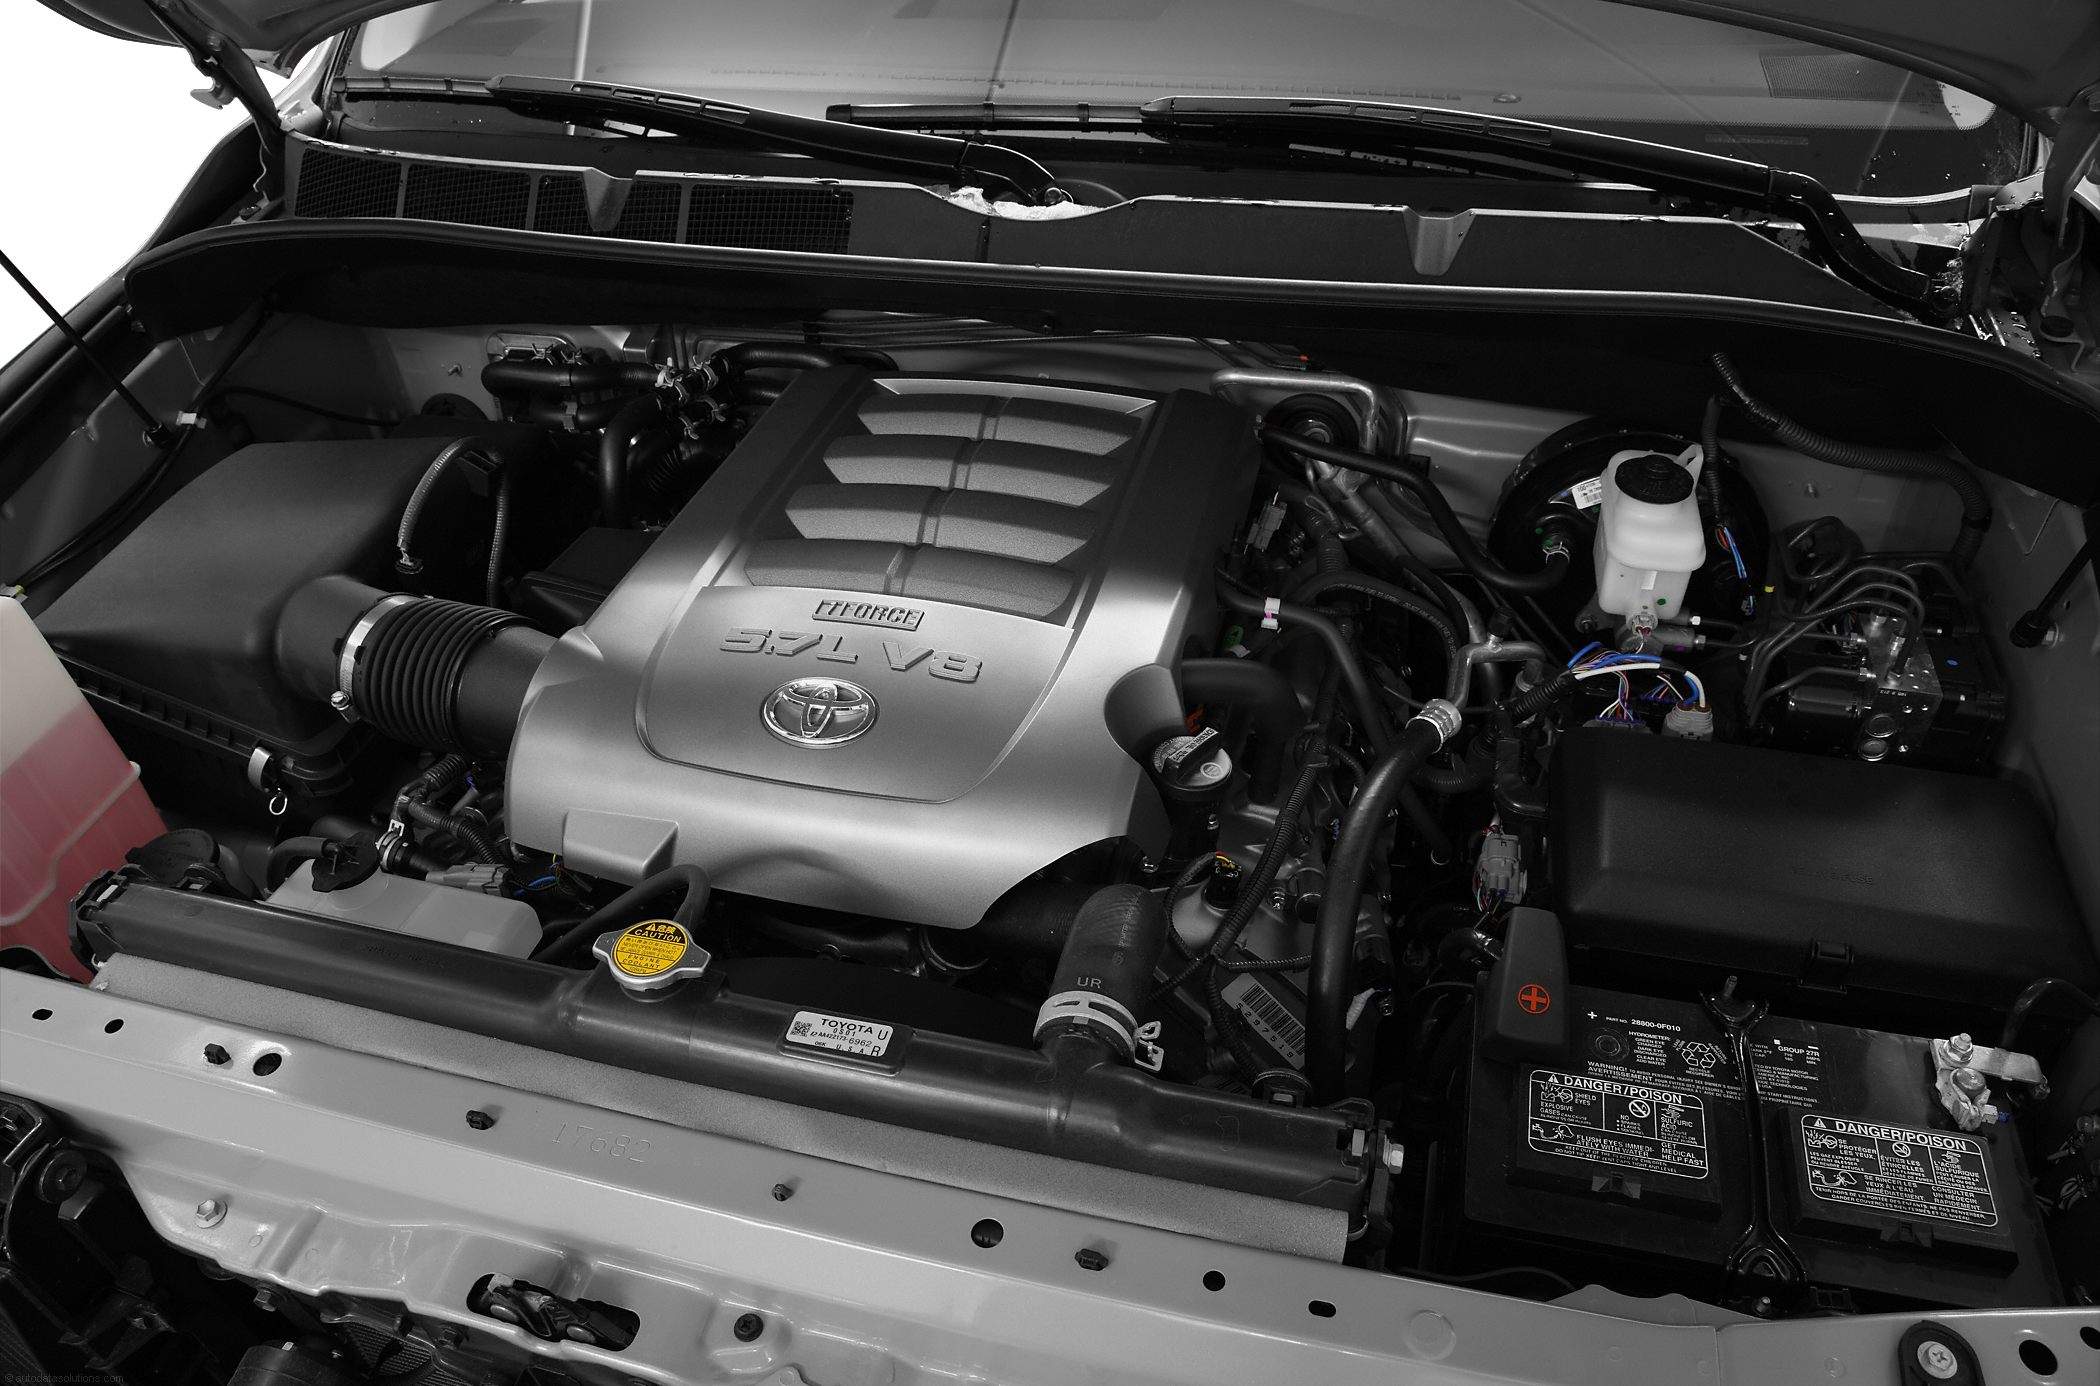 Toyota Sequoia engine #4